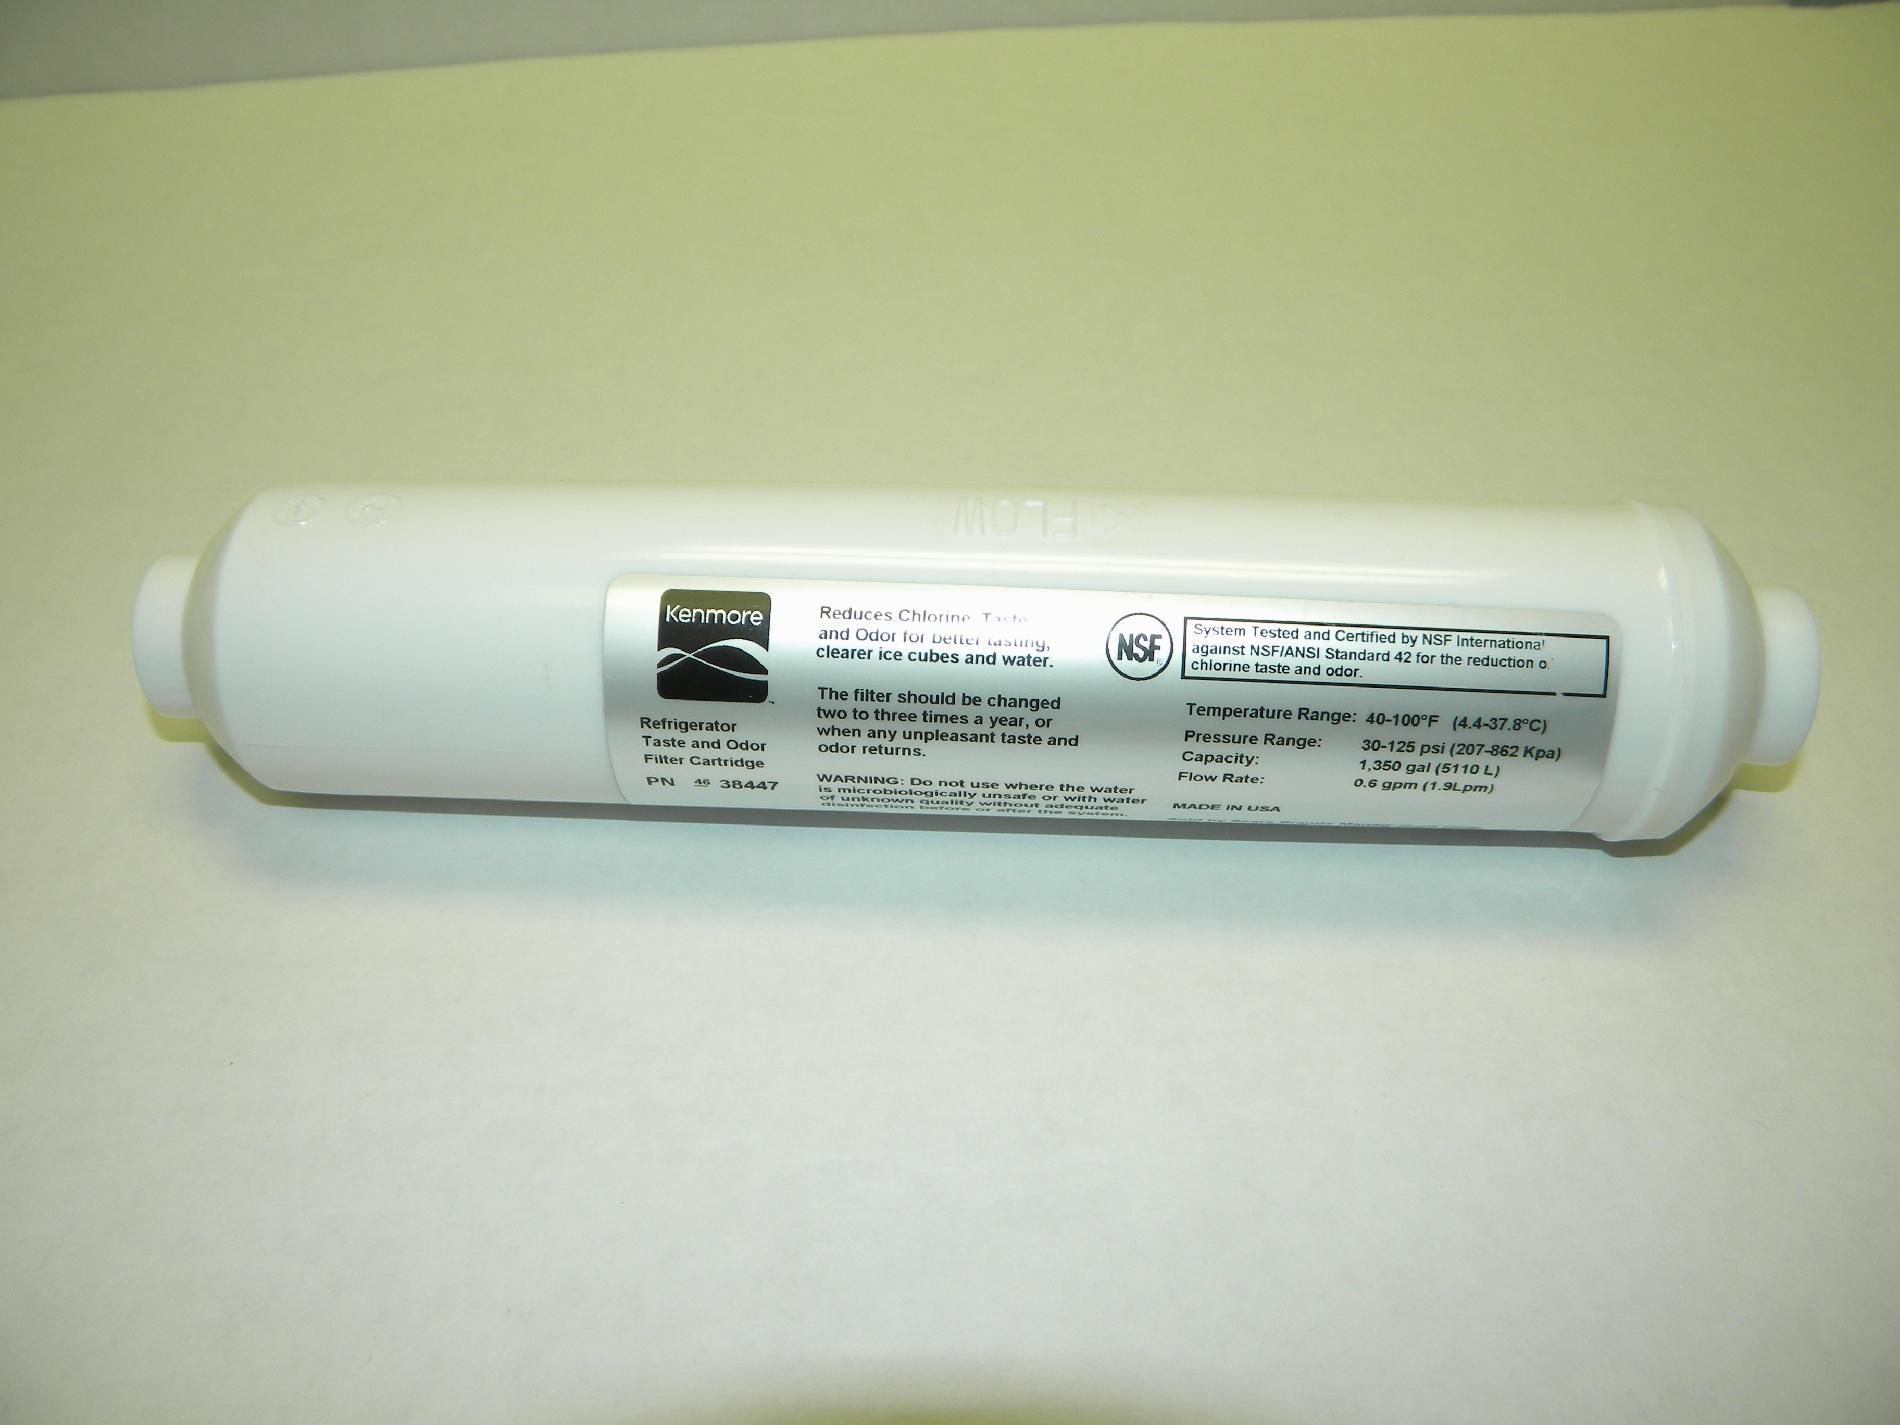 Refrigerator Taste and Odor Replacement Filter                                                                                   at mygofer.com